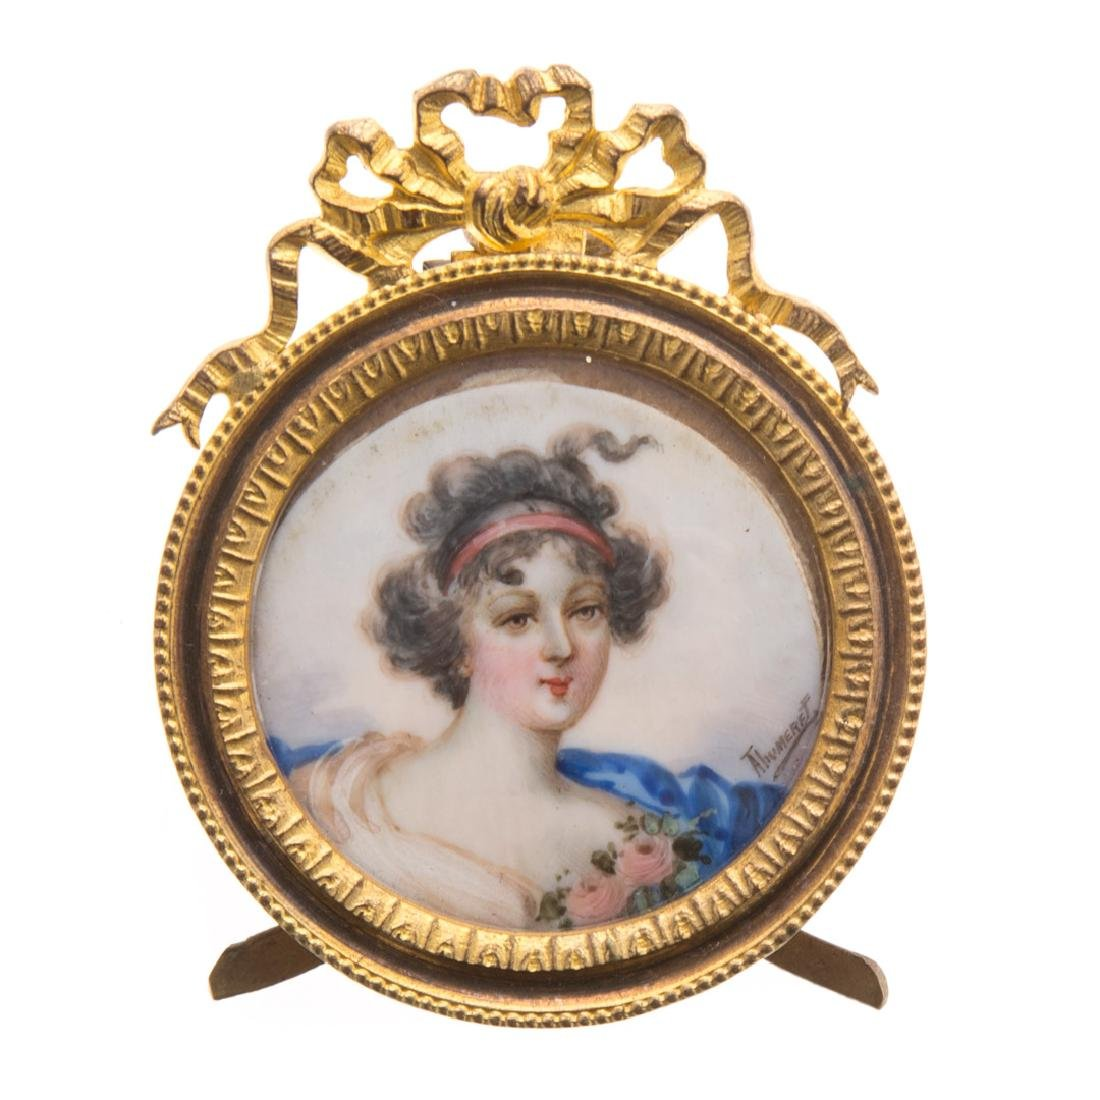 French School 19th century portrait miniature